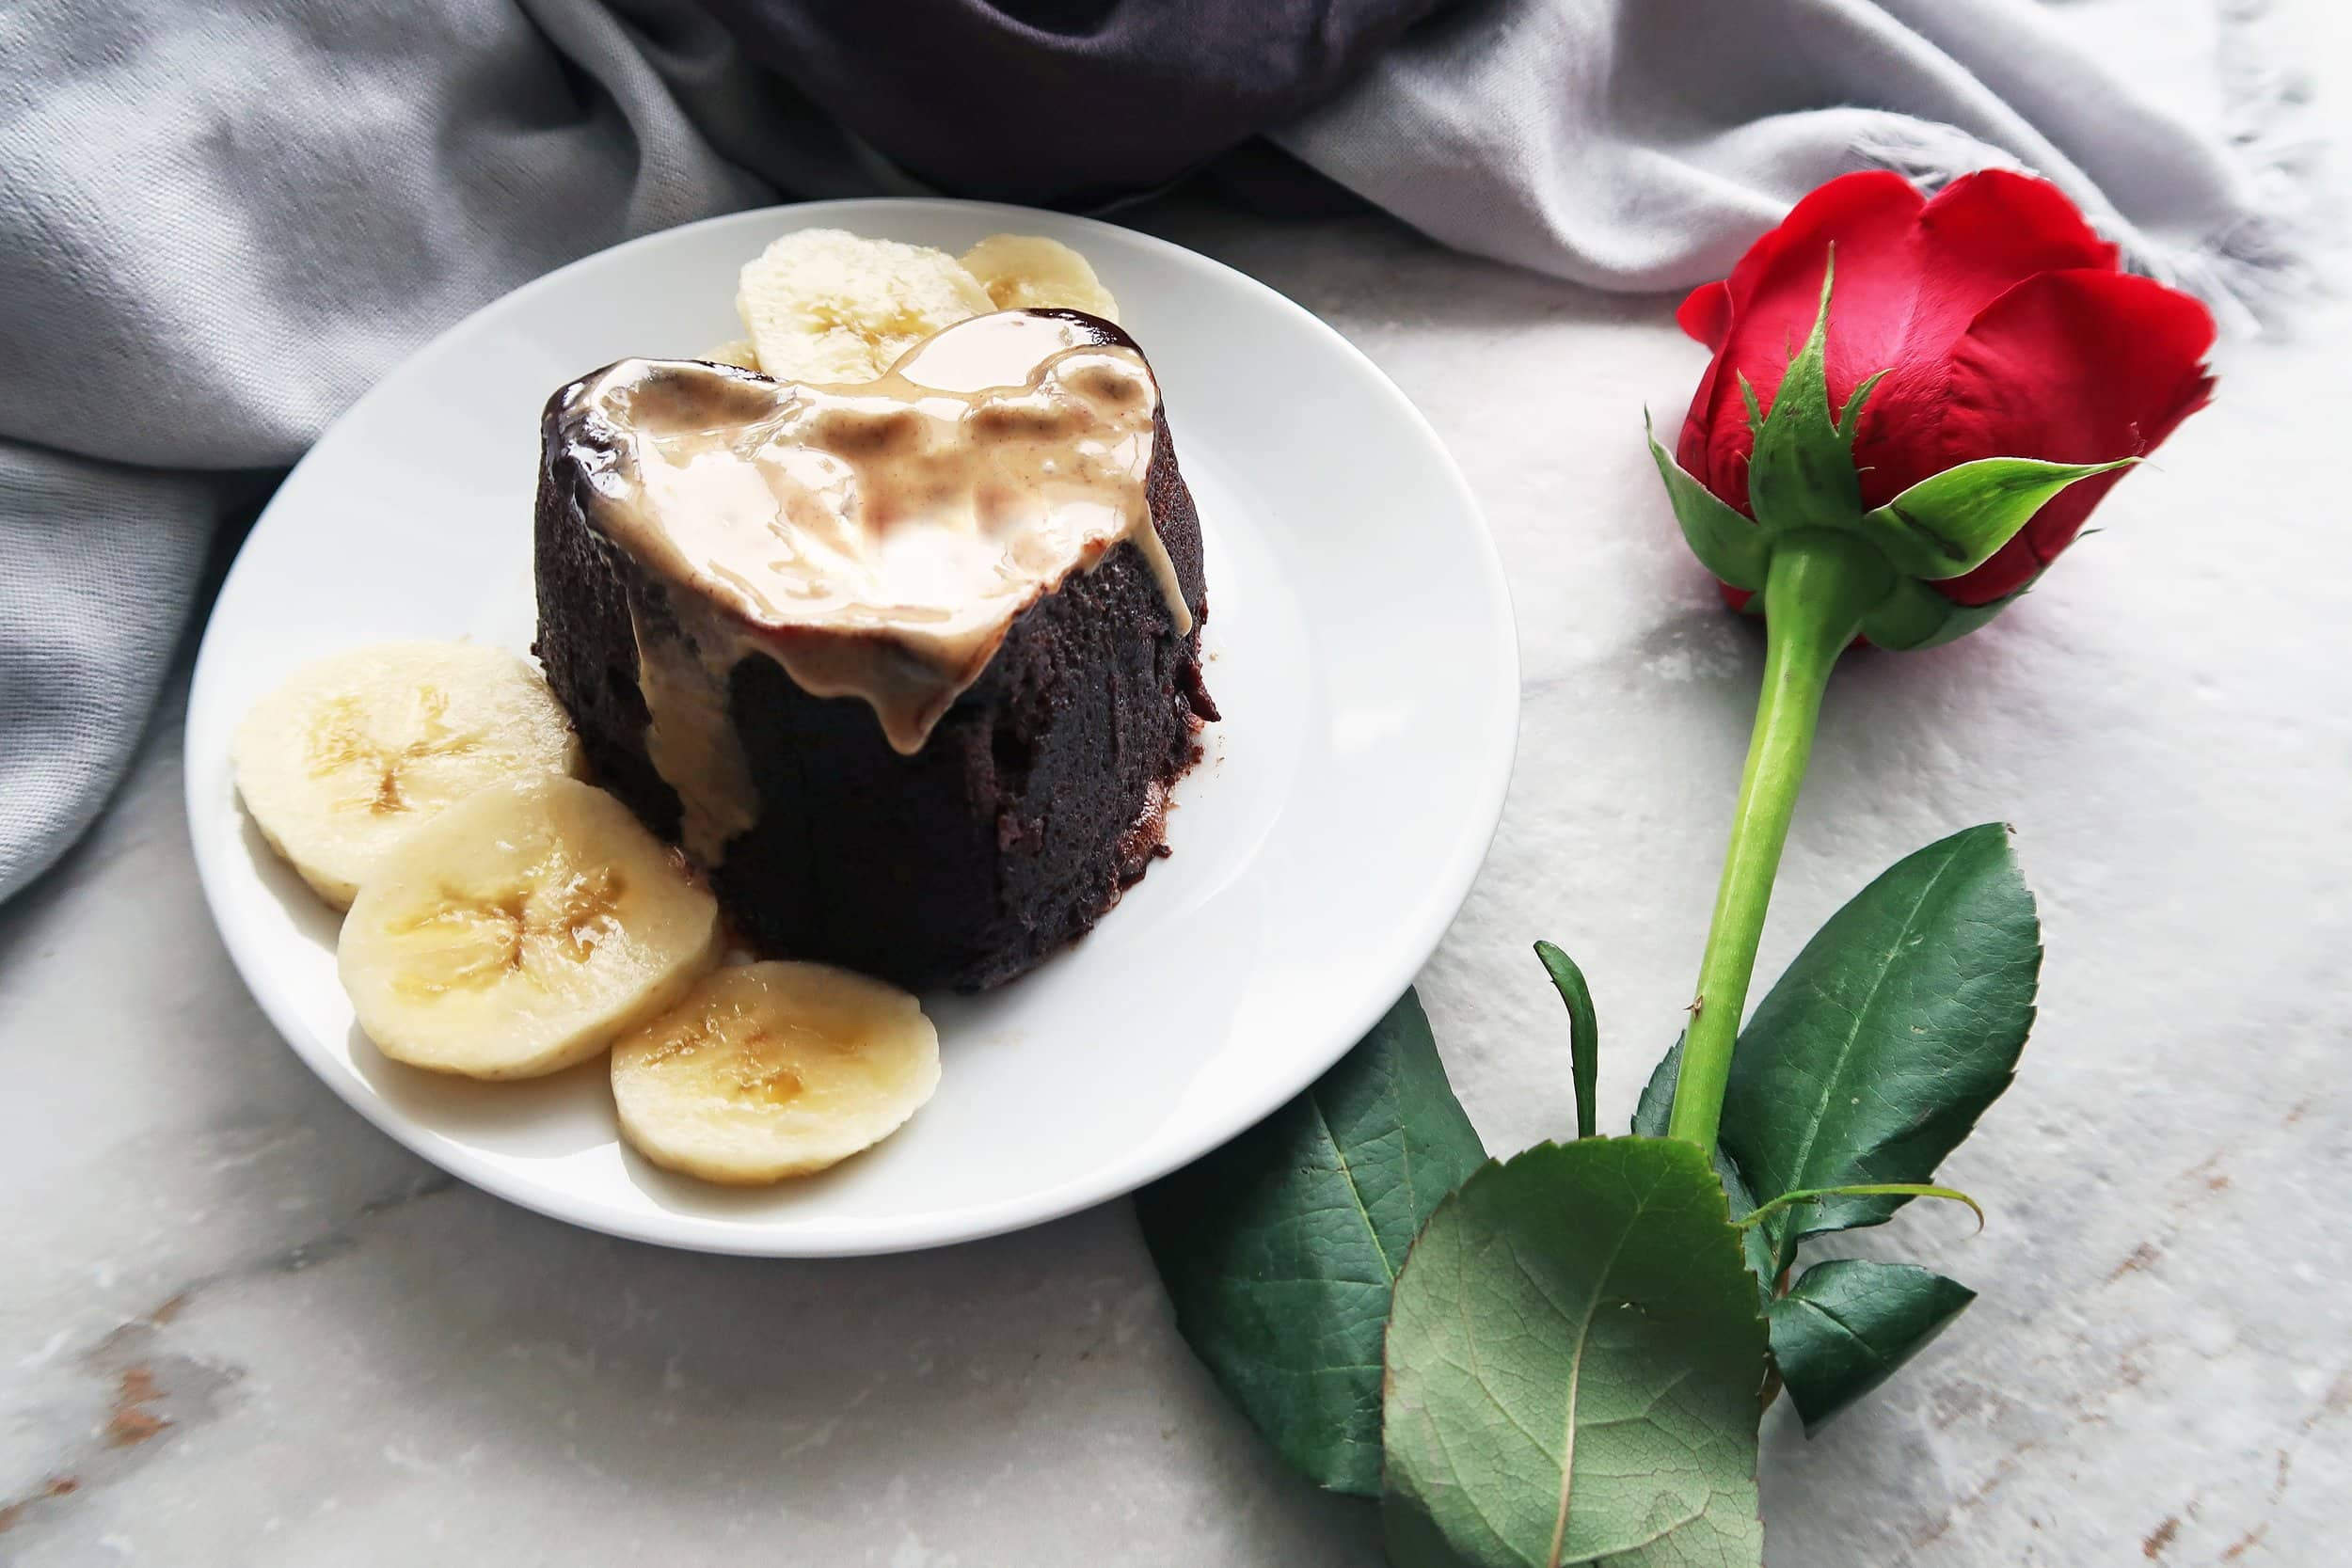 A peanut butter banana chocolate mini cake on a plate next to a rose.